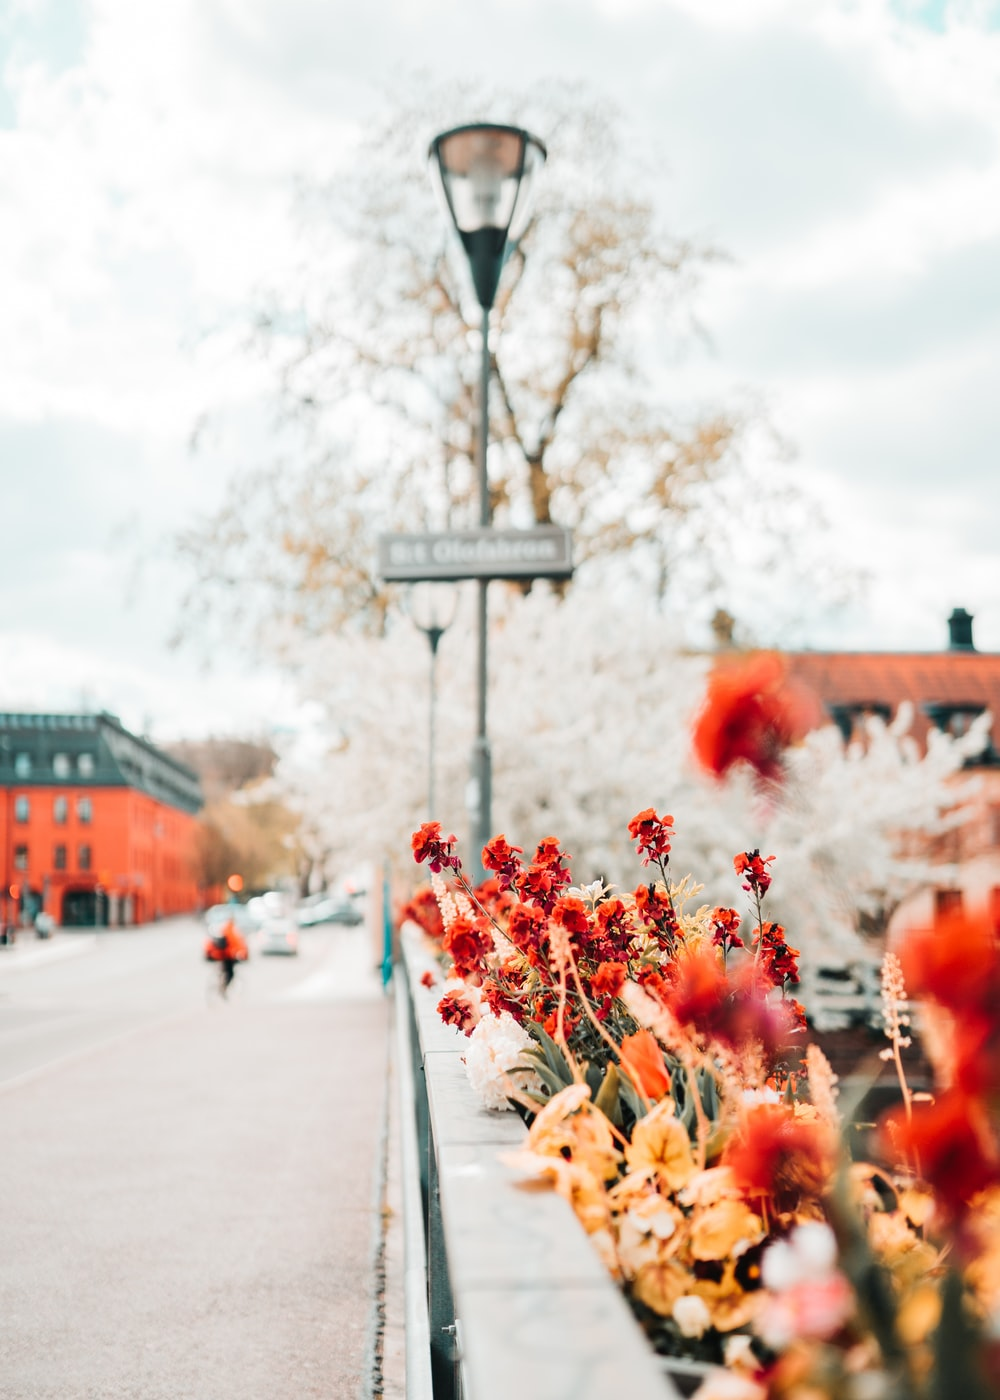 red and white flowers on street during daytime